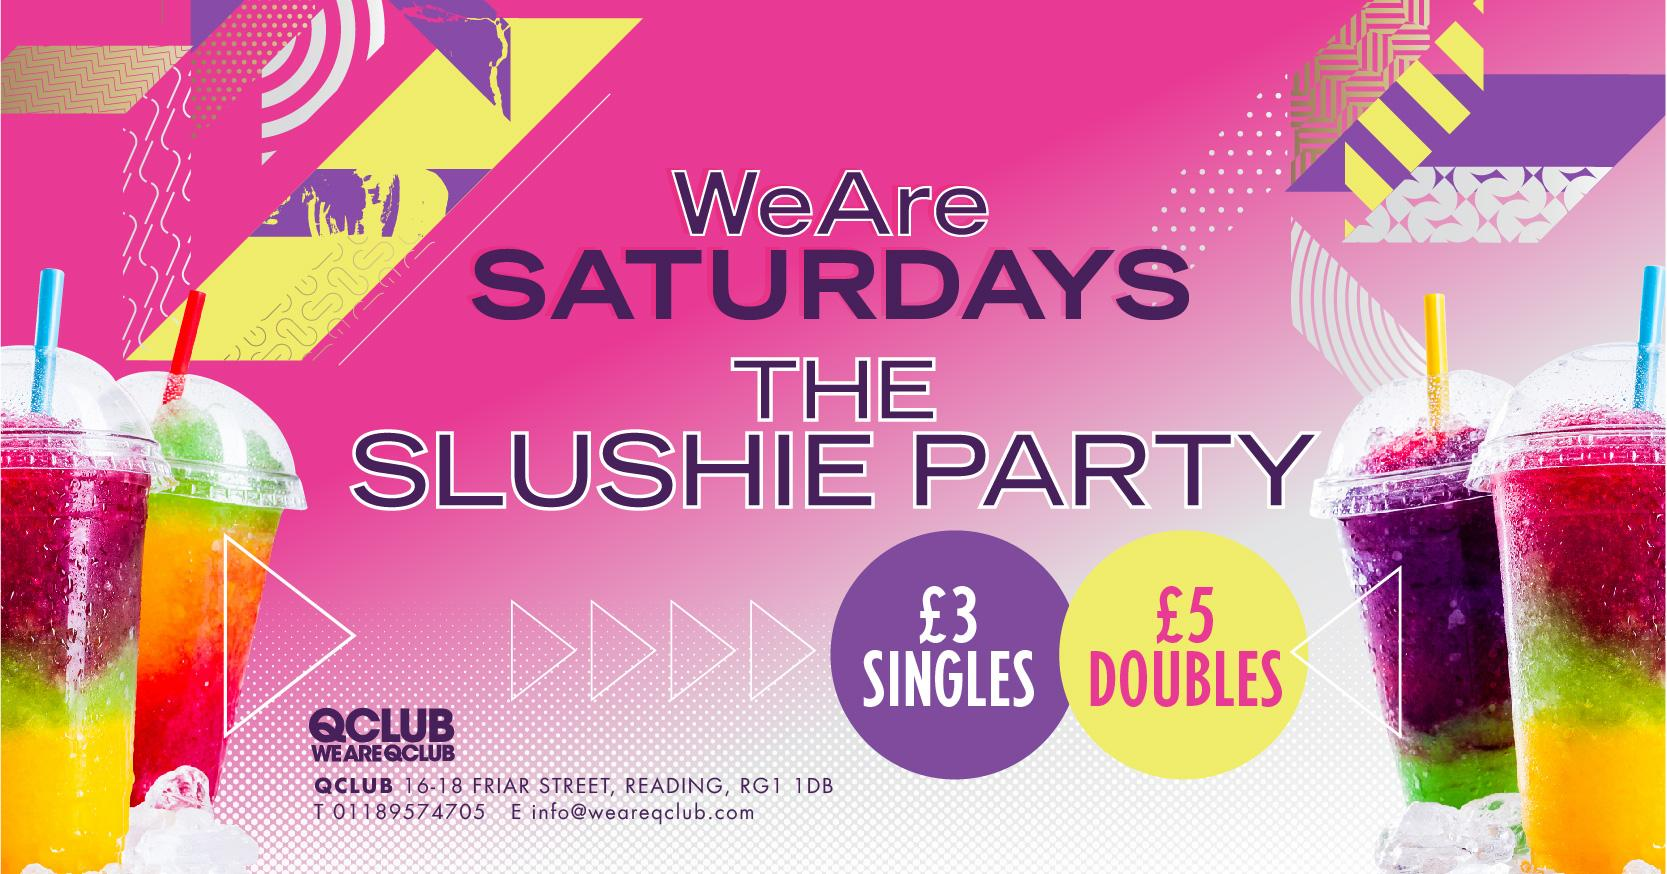 WeAreSaturdays / The Slushie Party!